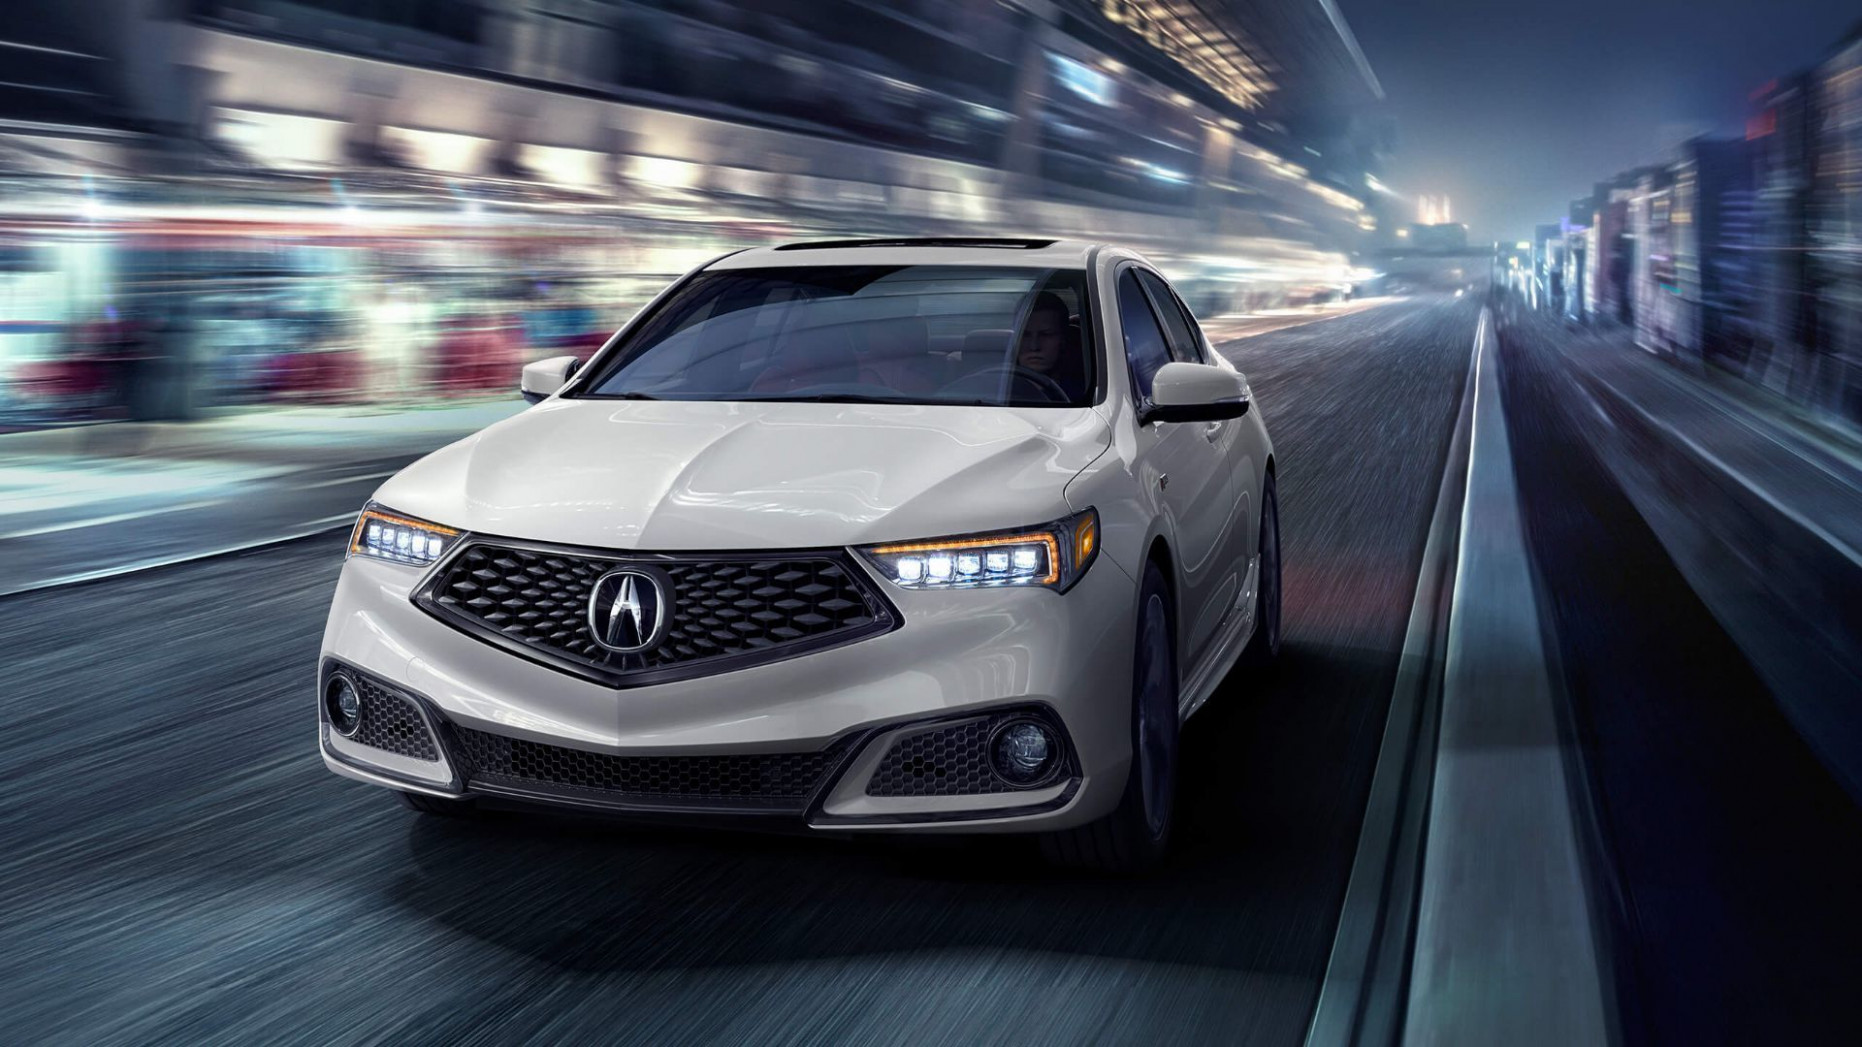 acura black friday deals 8 Release, Specs and Review 8*8 ...